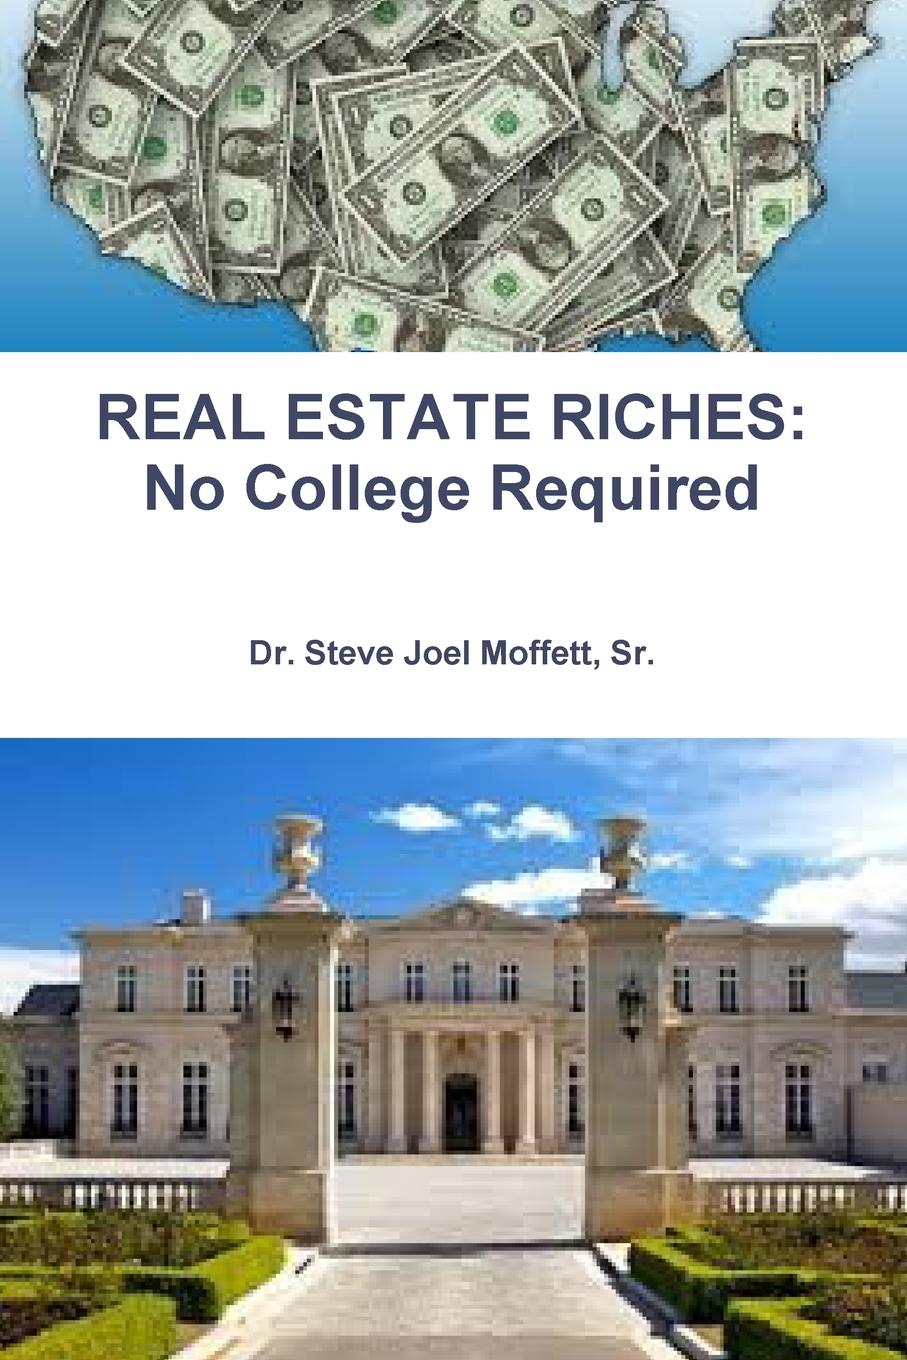 REAL ESTATE RICHES. No College Required Dr. Steve J. Moffett, Sr. is a successful real estate broker...